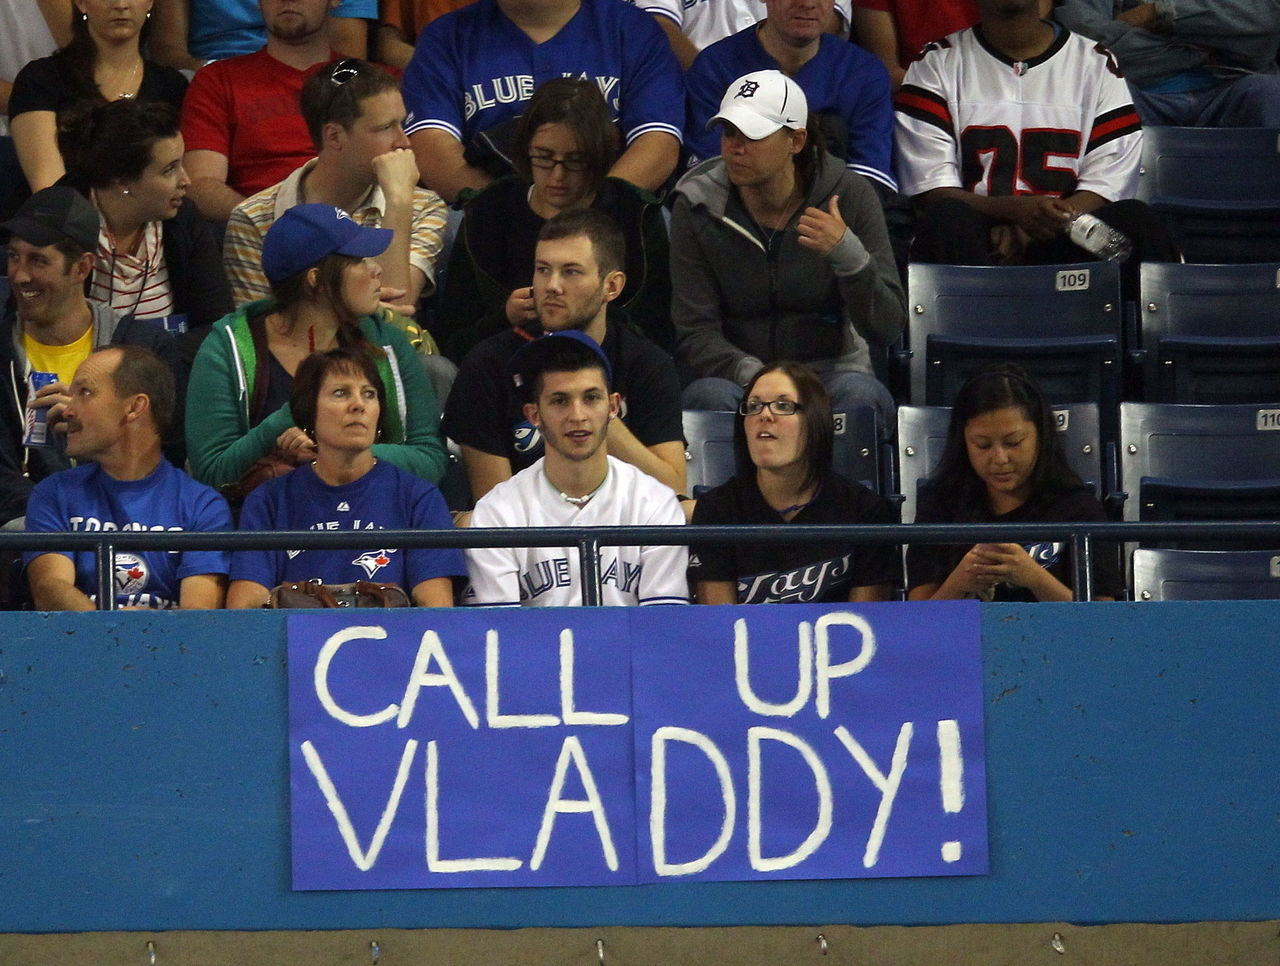 Call-up-vladdy